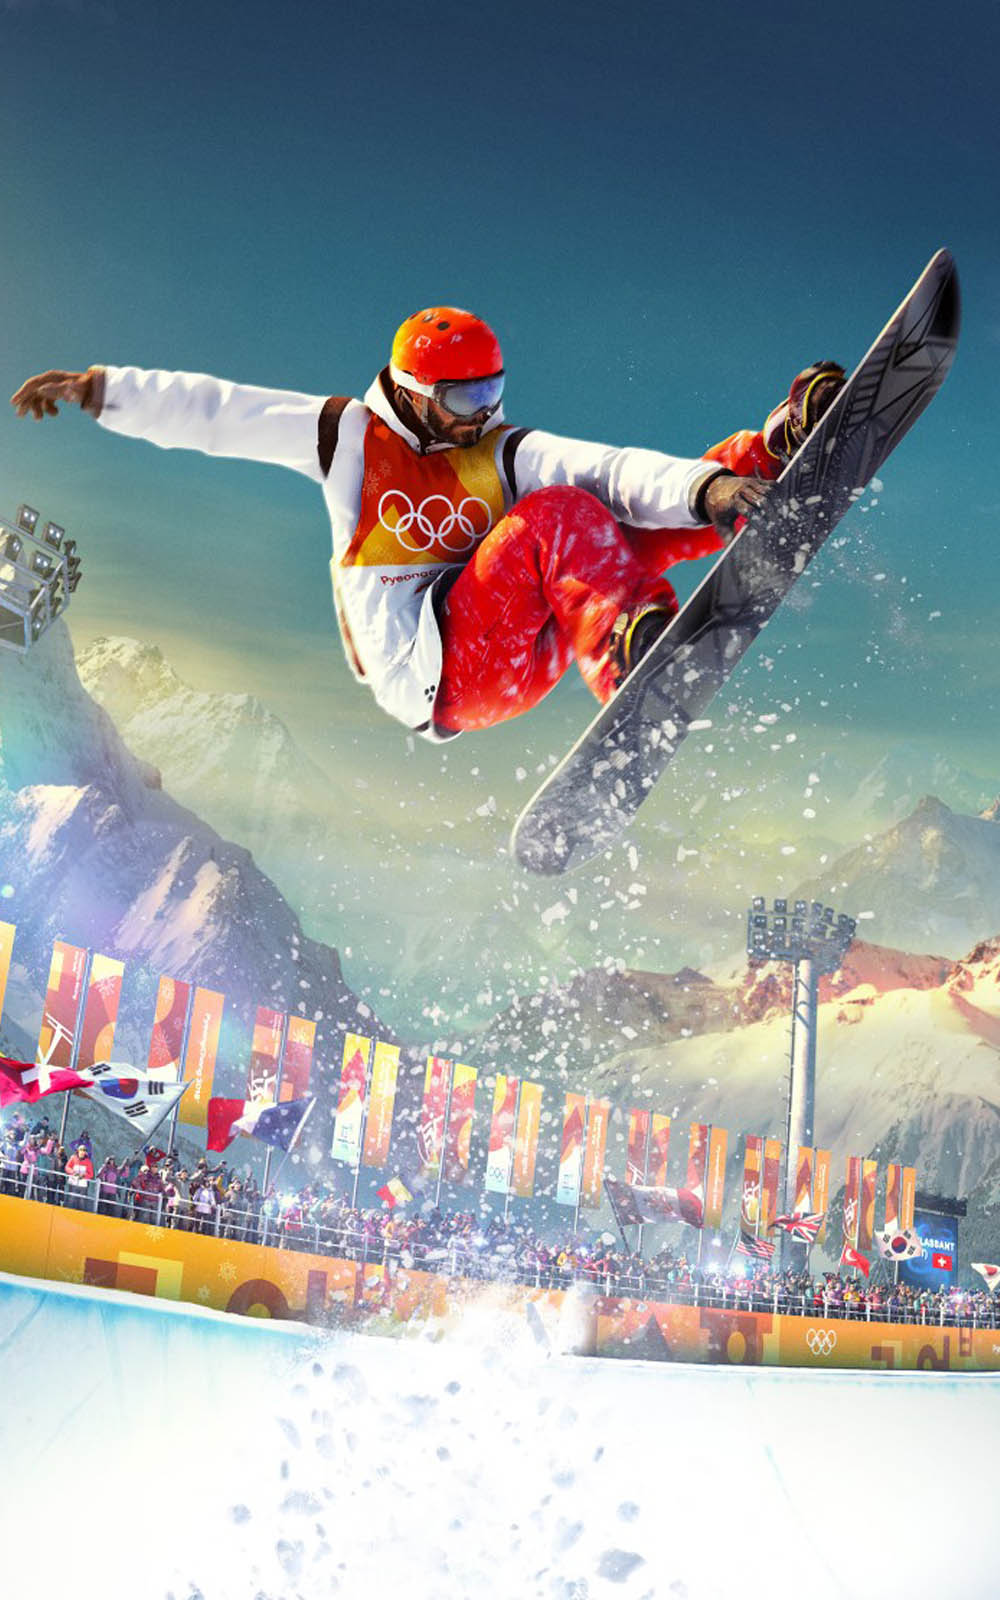 Girl Quotes Wallpapers For Mobile Phones Download Steep Winter Games Edition Free Pure 4k Ultra Hd